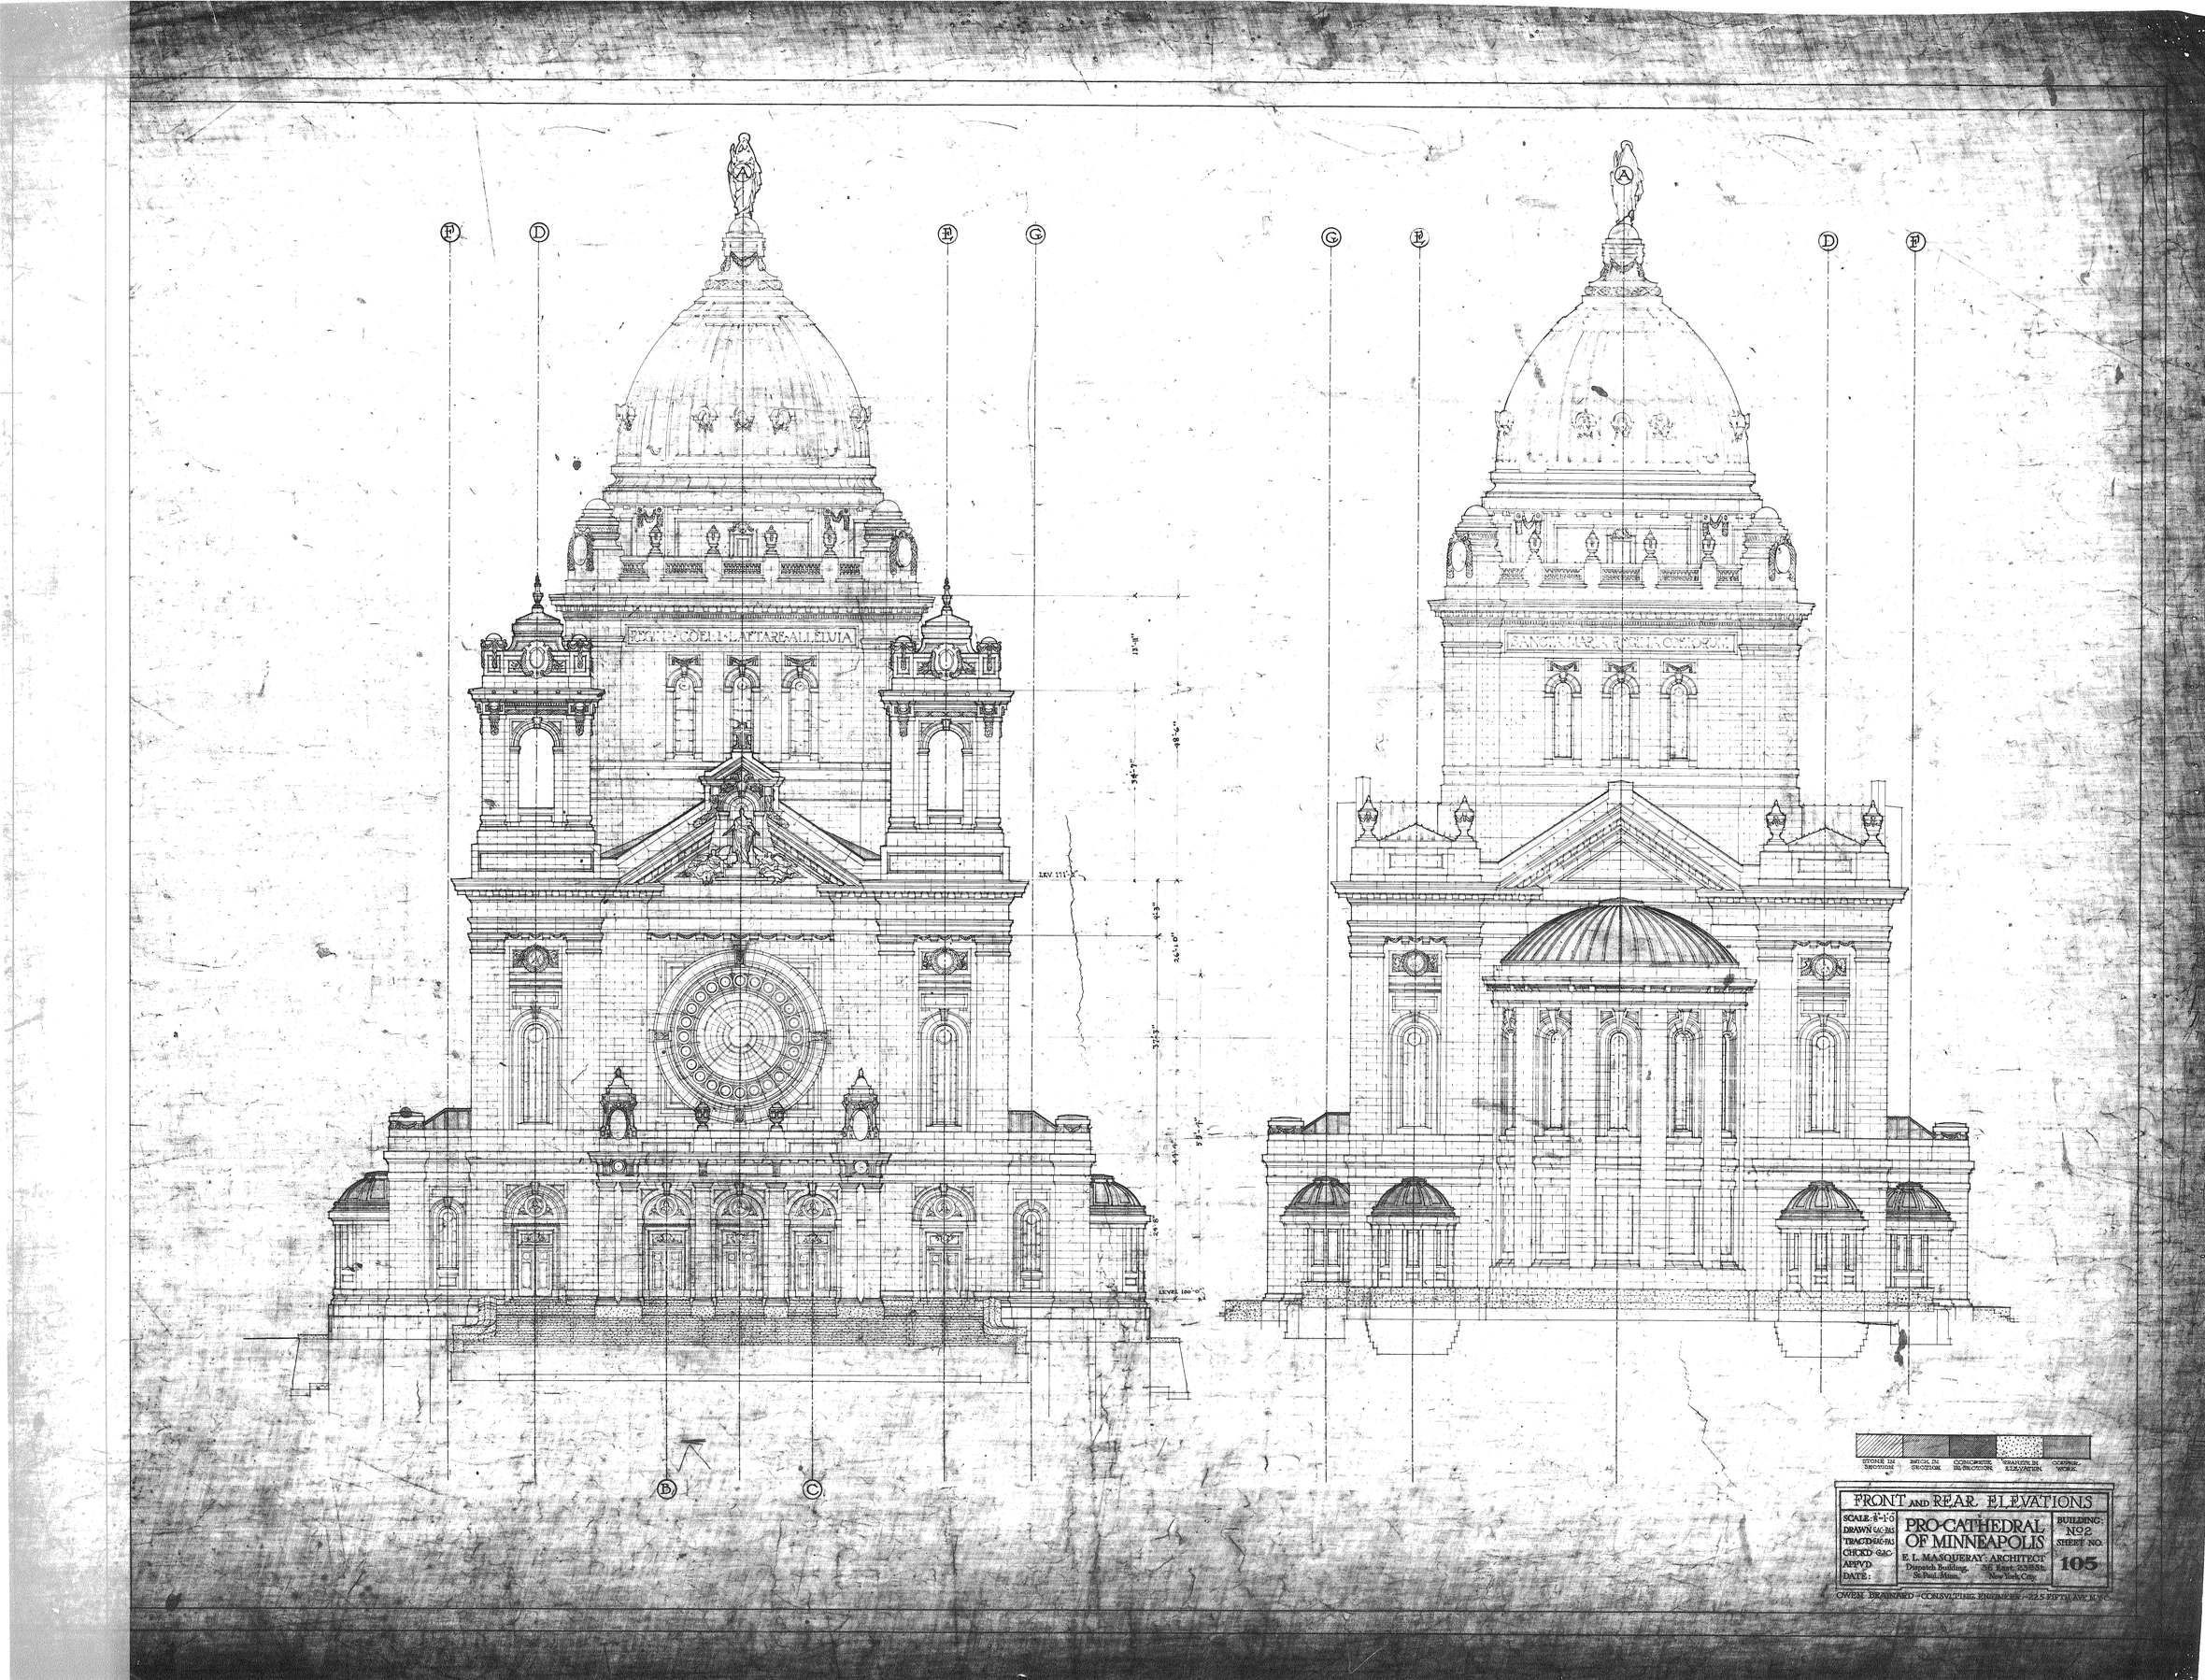 Vintage blueprint front and rear elevations basilica of saint mary vintage blueprint front and rear elevations basilica of saint mary church pro cathedral of minneapolis el masqueray architect building no malvernweather